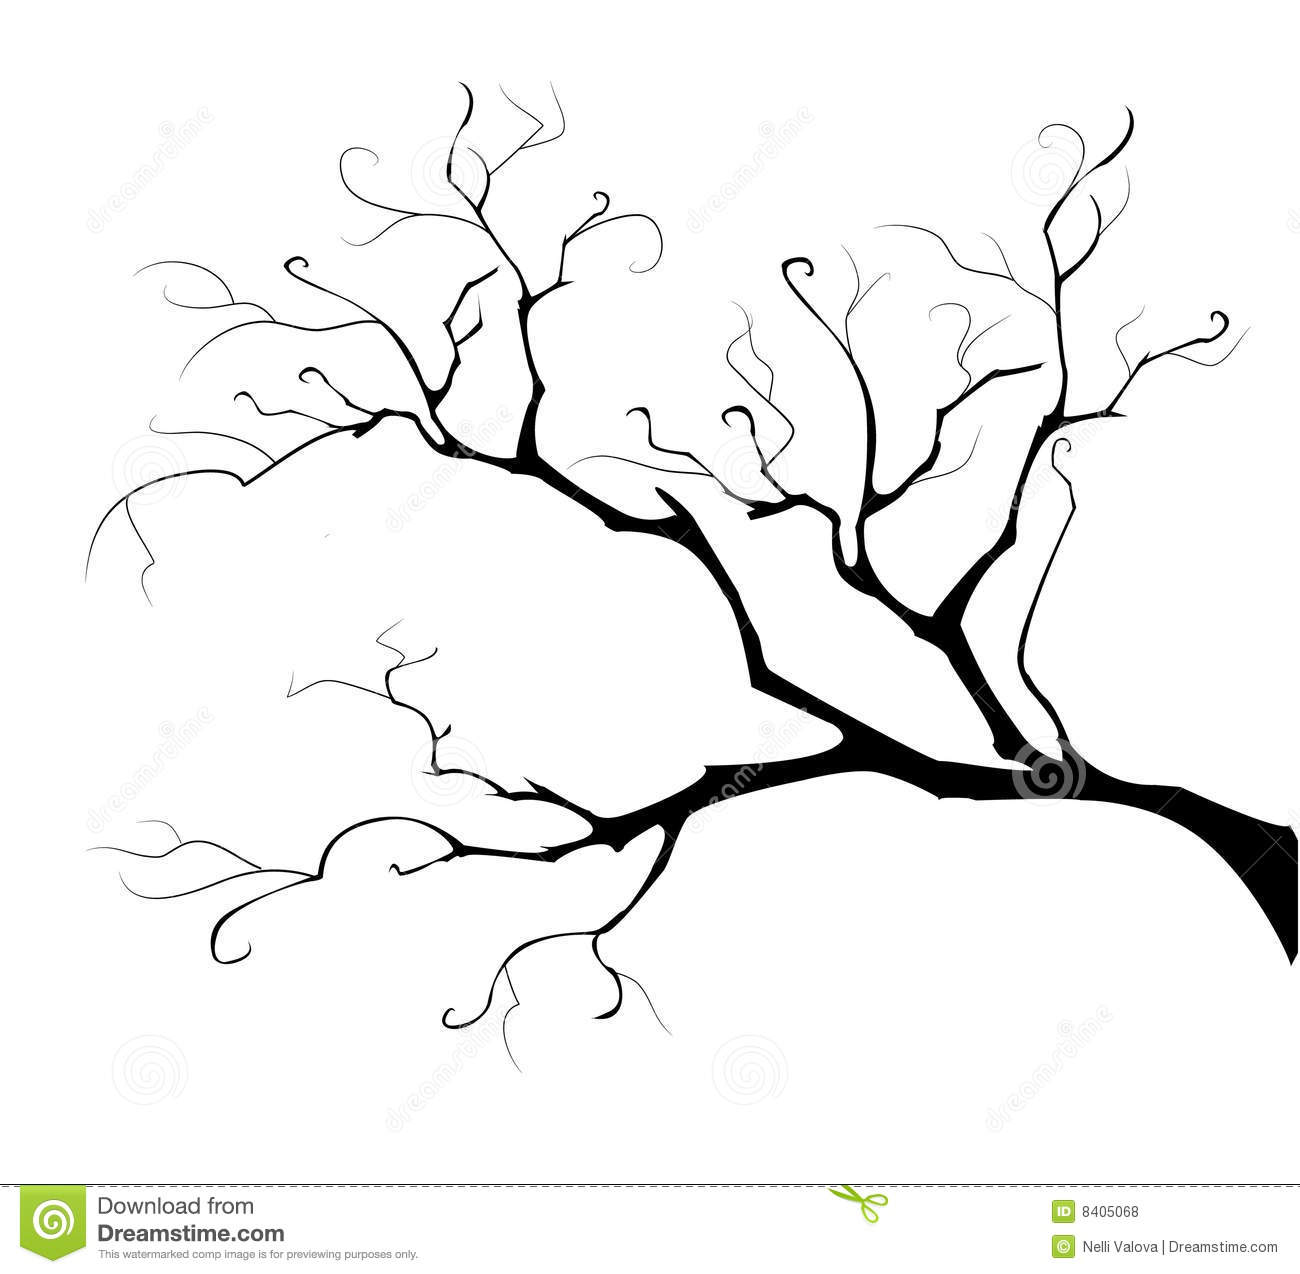 how to draw a tree branch silhouette